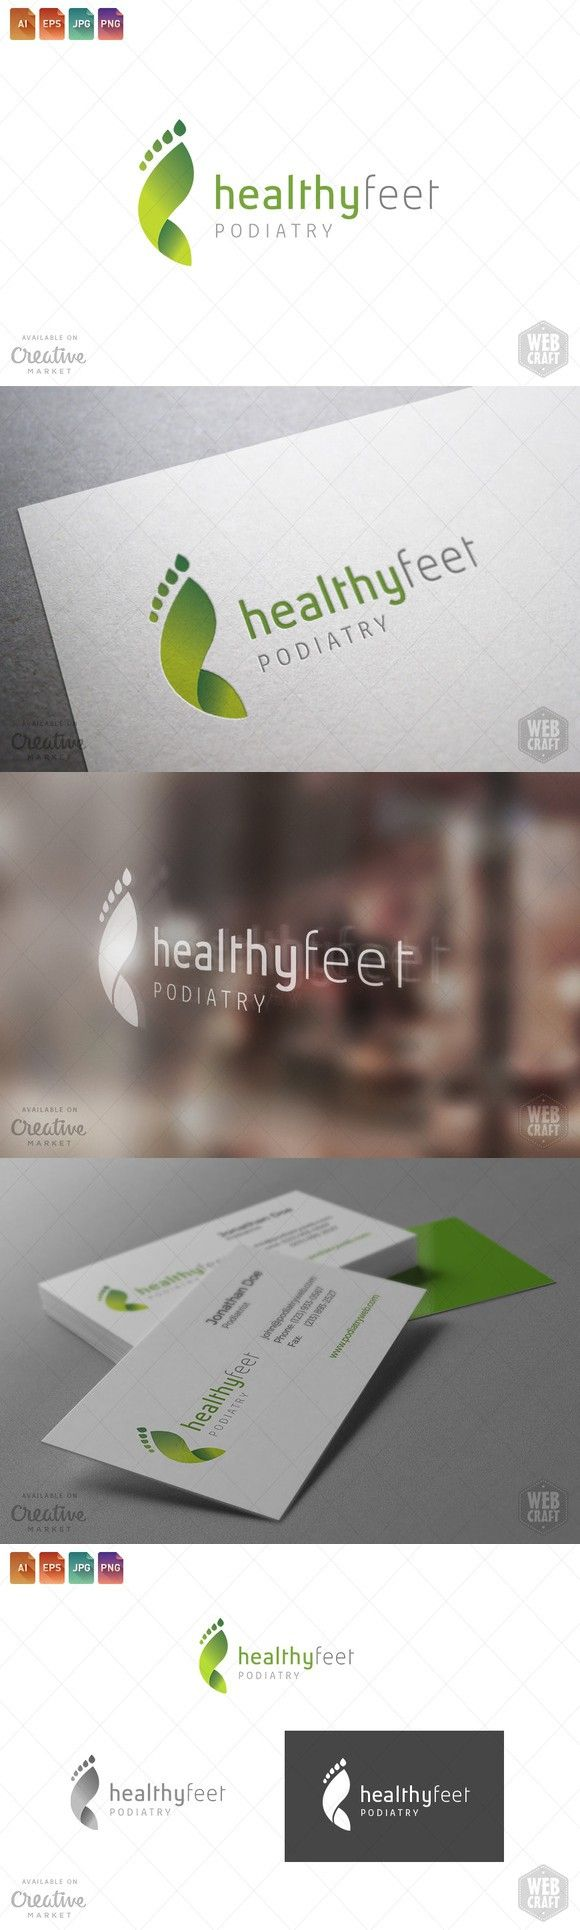 Podiatry Logo Template 12. Logo Templates. $29.00